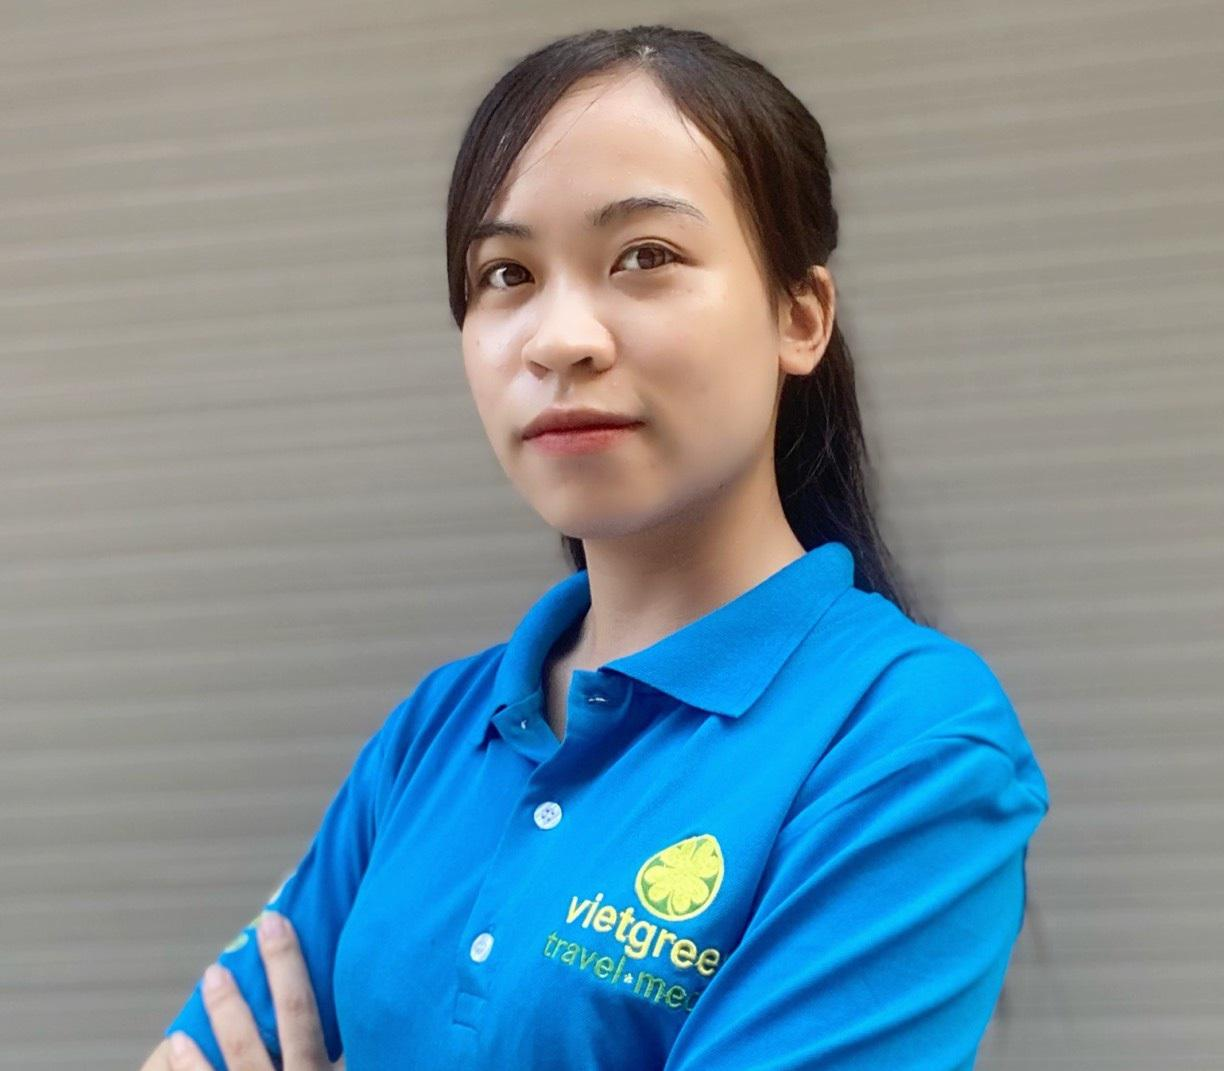 Meet Our Professional Tour Operator Services Team